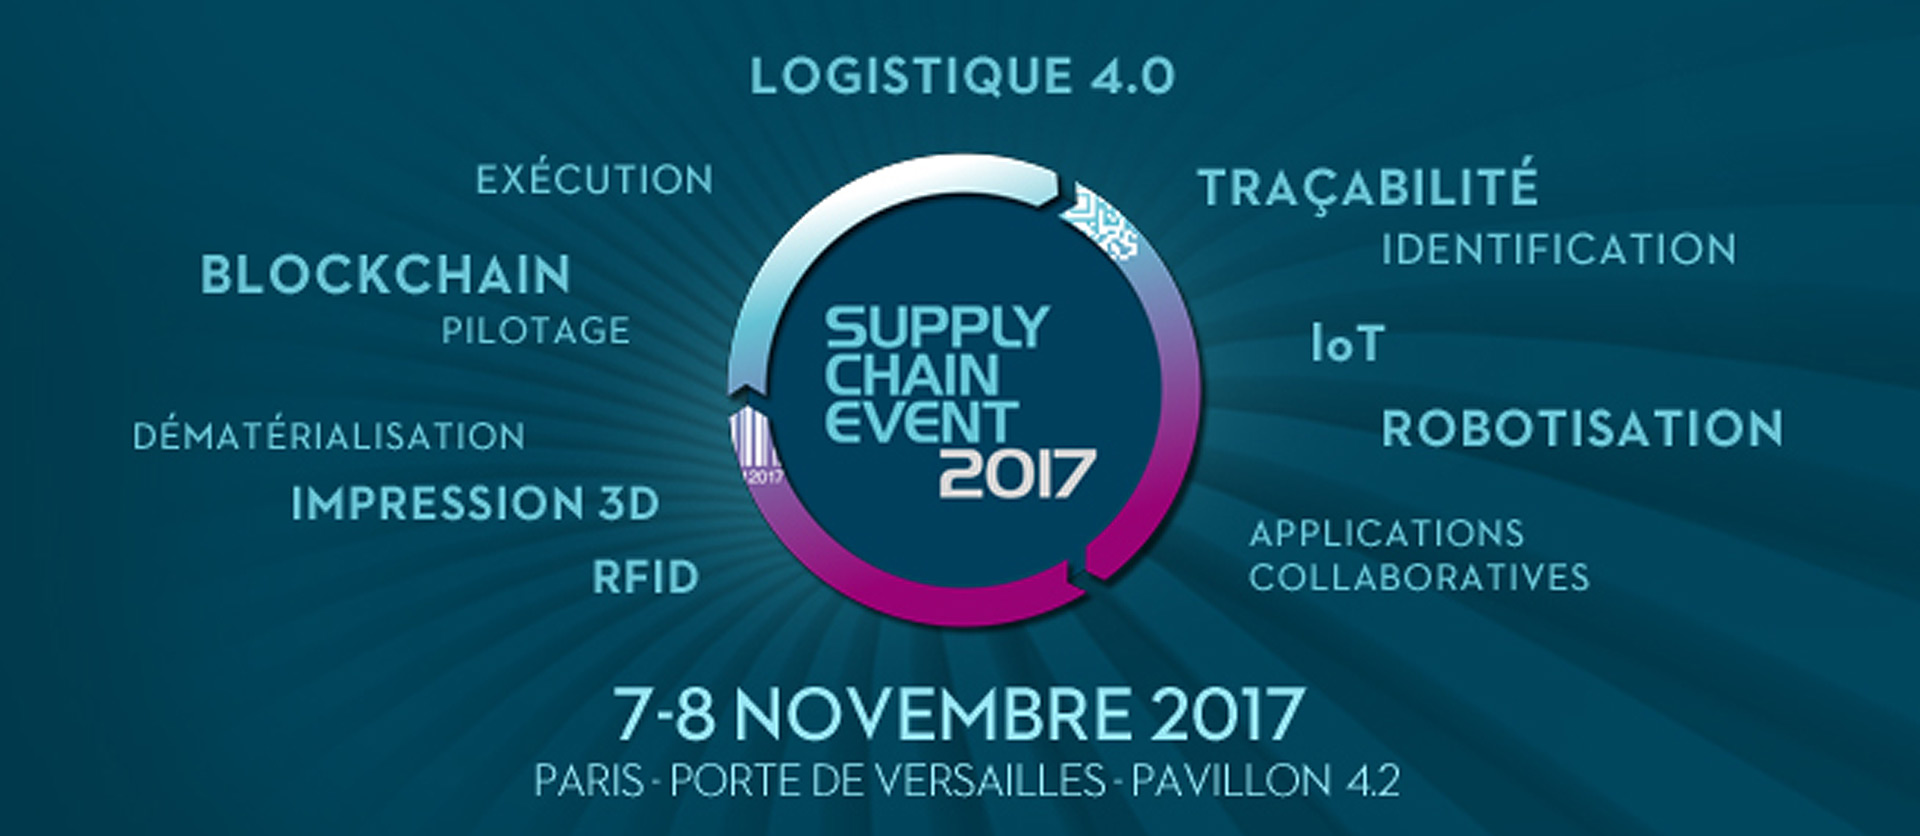 supply-chain-event-2017-02-